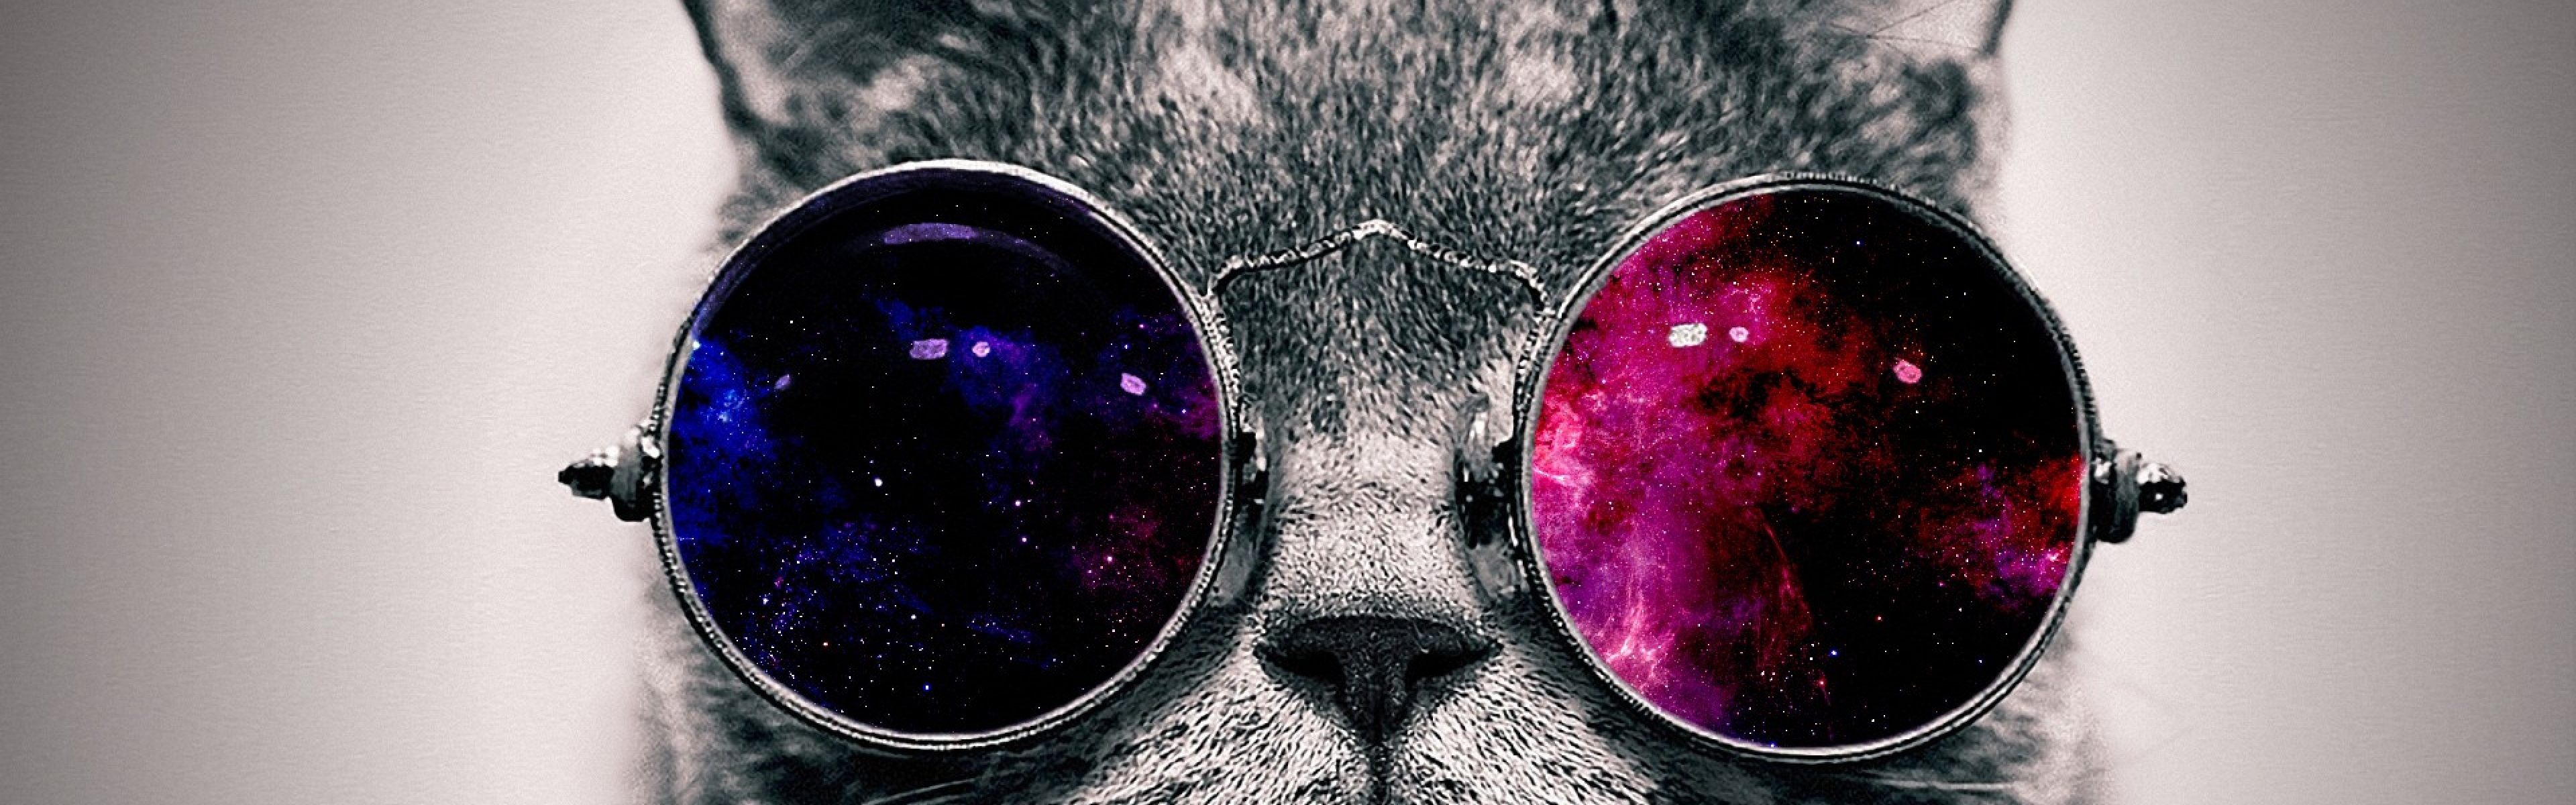 Funny Space Cat With Glasses 3840x1200